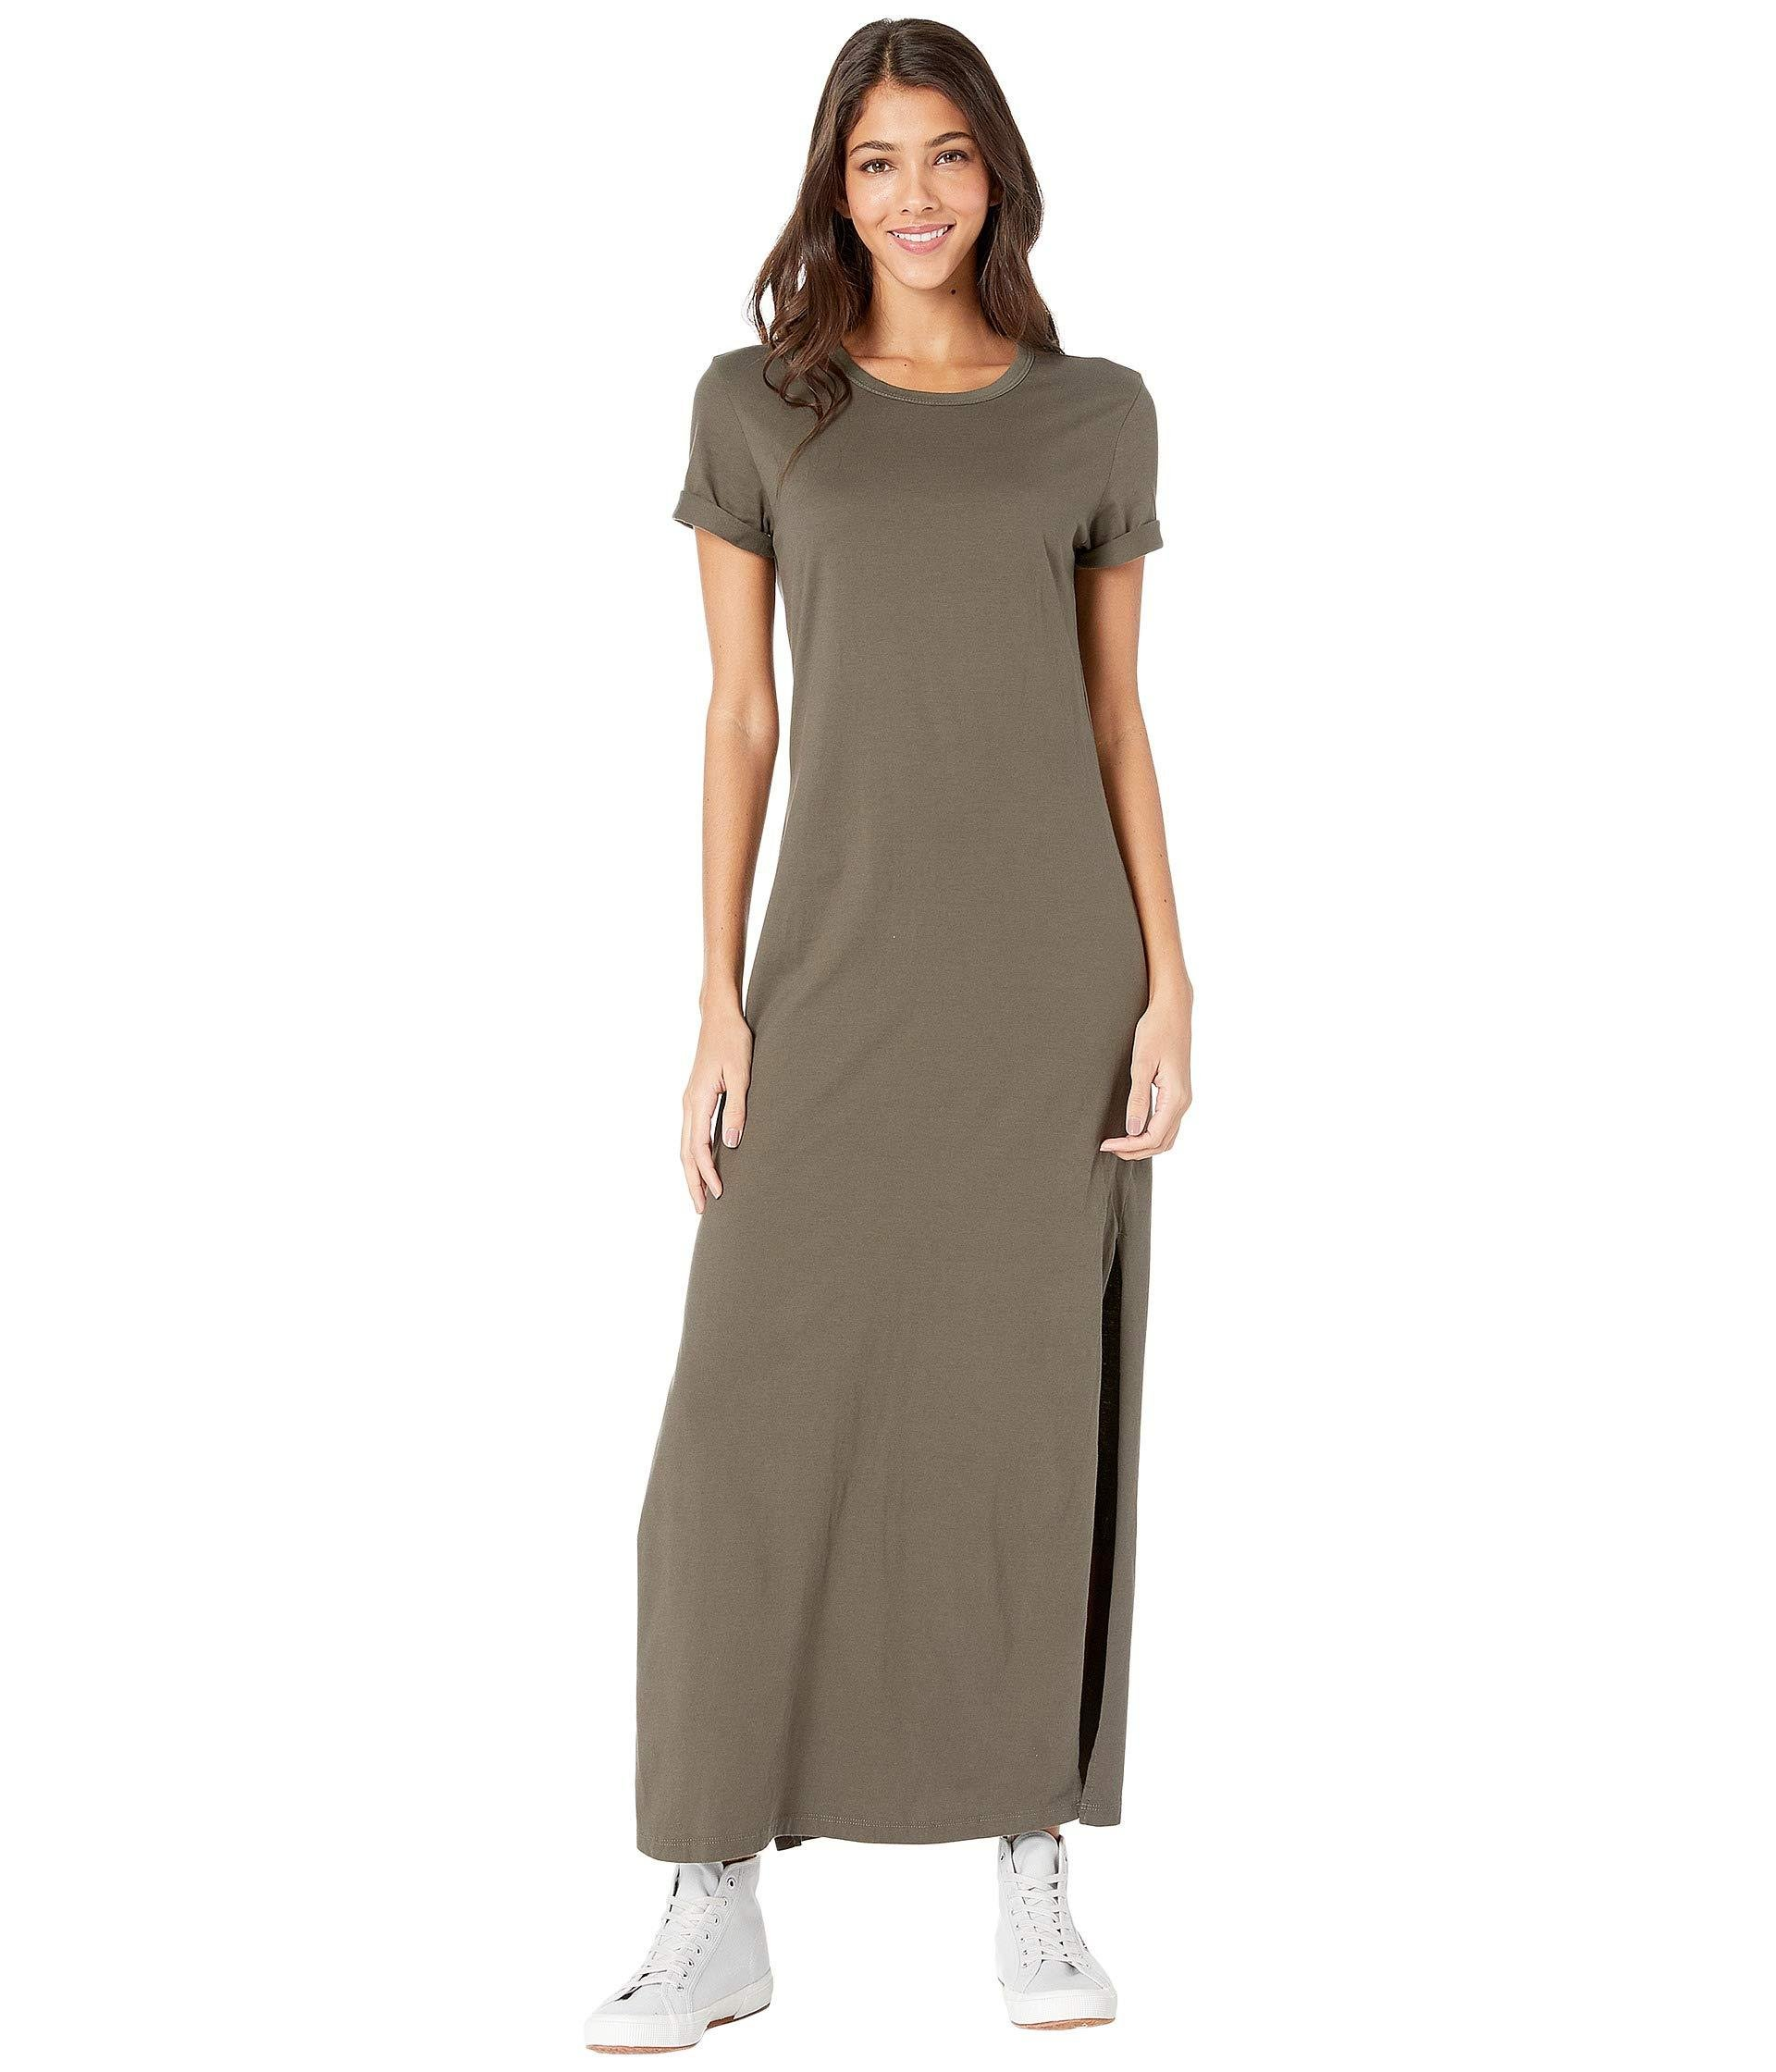 b946511fa9 AG Jeans Alana Relaxed Maxi T-shirt Dress in Green - Save 10% - Lyst